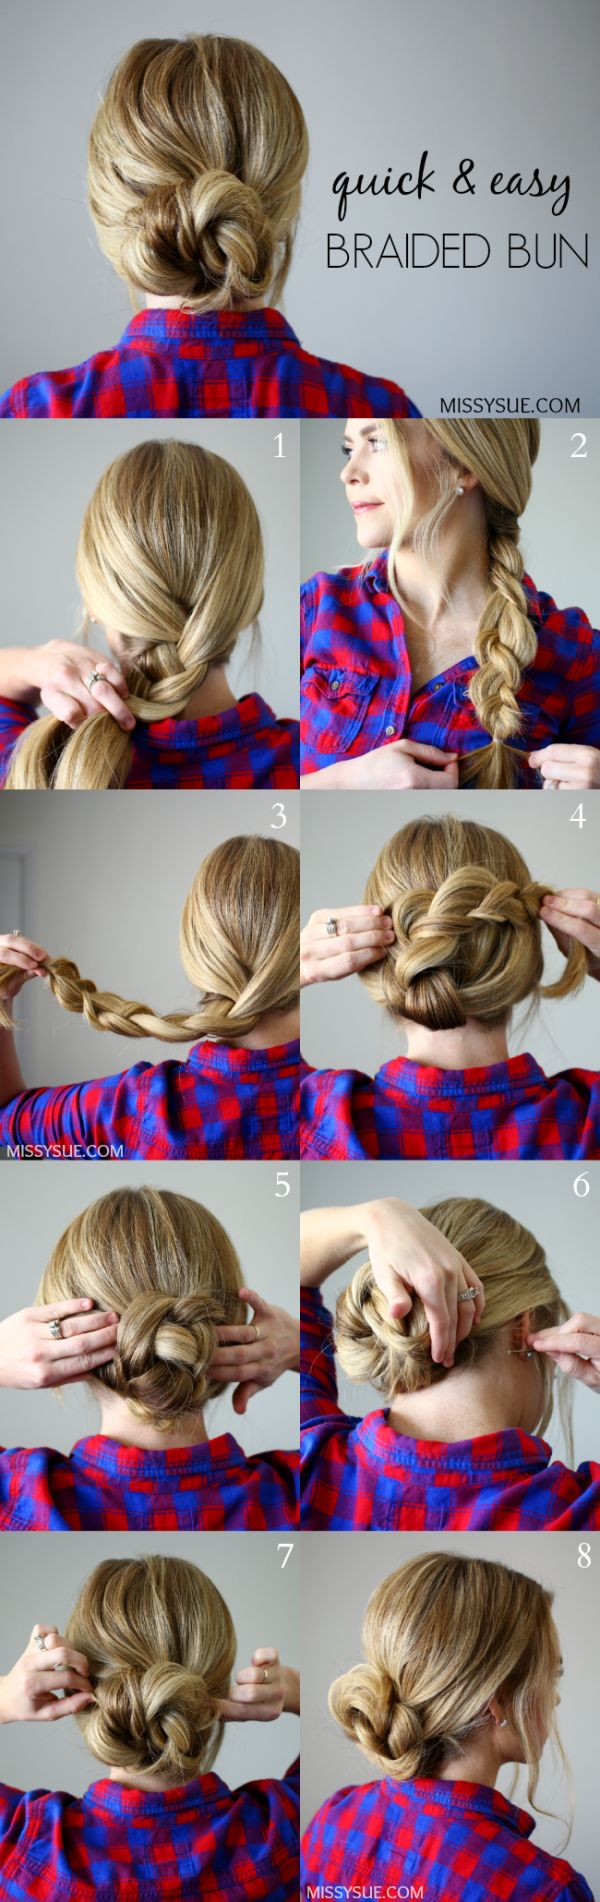 Quick and Easy Braided Bun